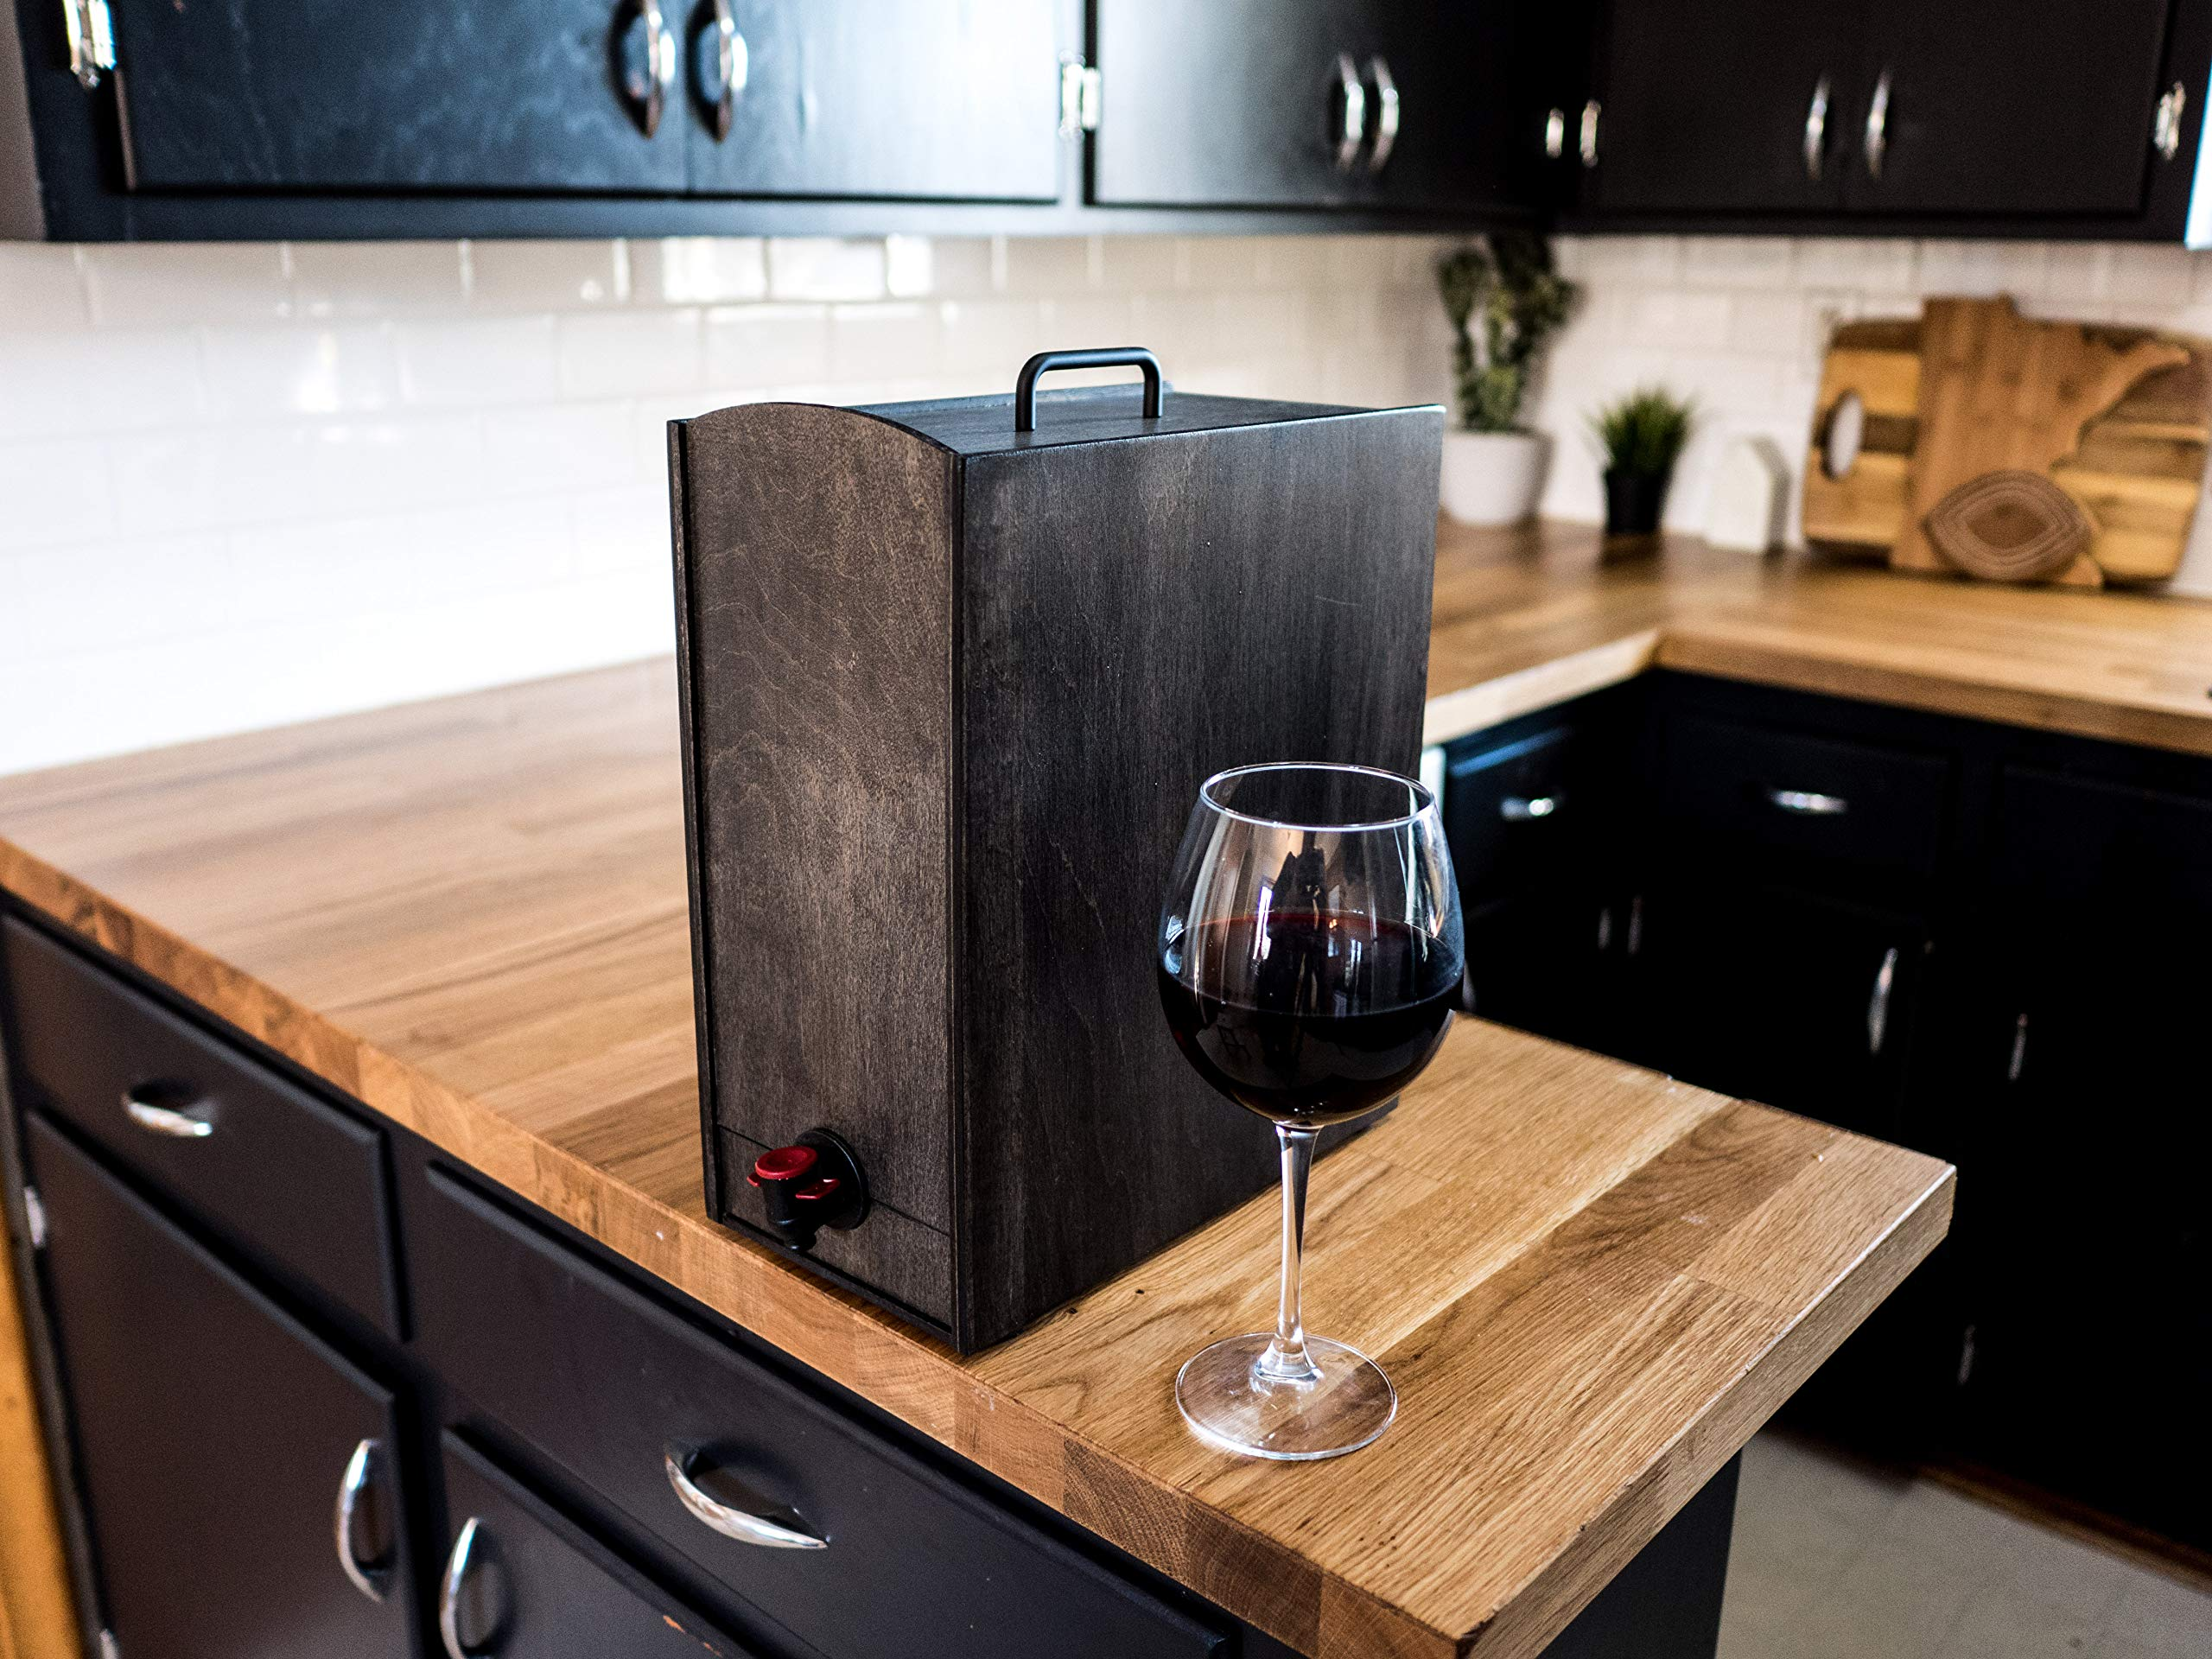 Boxed Wine Wood Case by Winewood | Black Color | Fits 3 Liter and 5 Liter Boxes of Wine | Holder, Dispenser, Cover for Boxed Wine by Winewood Cases (Image #5)